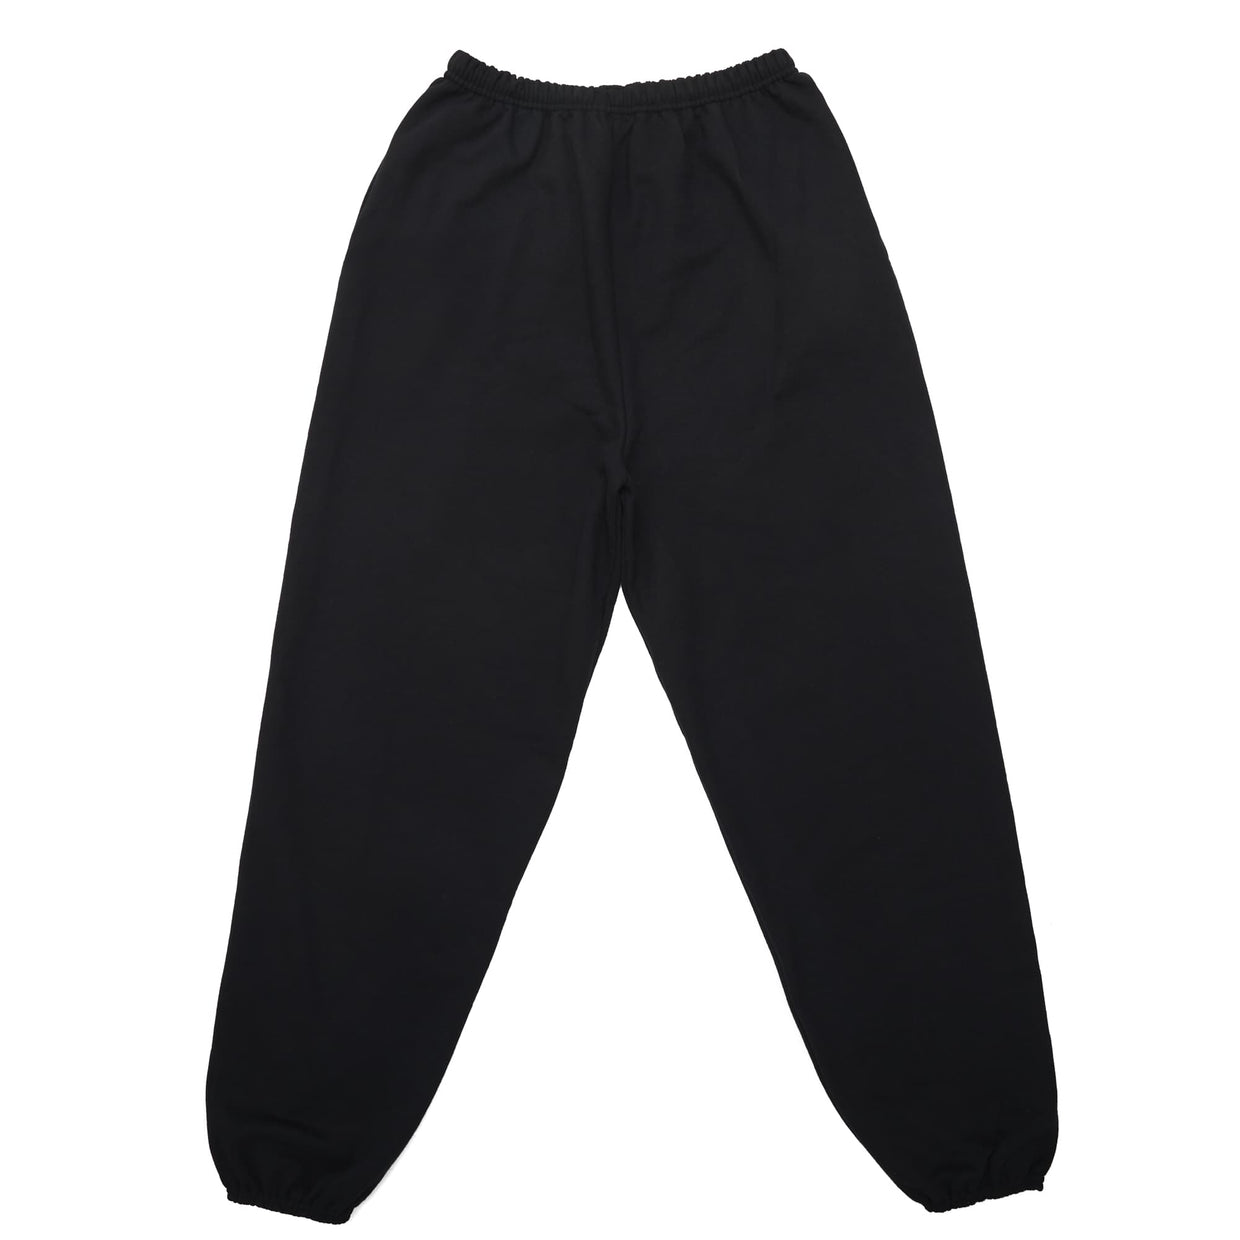 Erika Costell x Champion GOAT Unisex Sweatpants